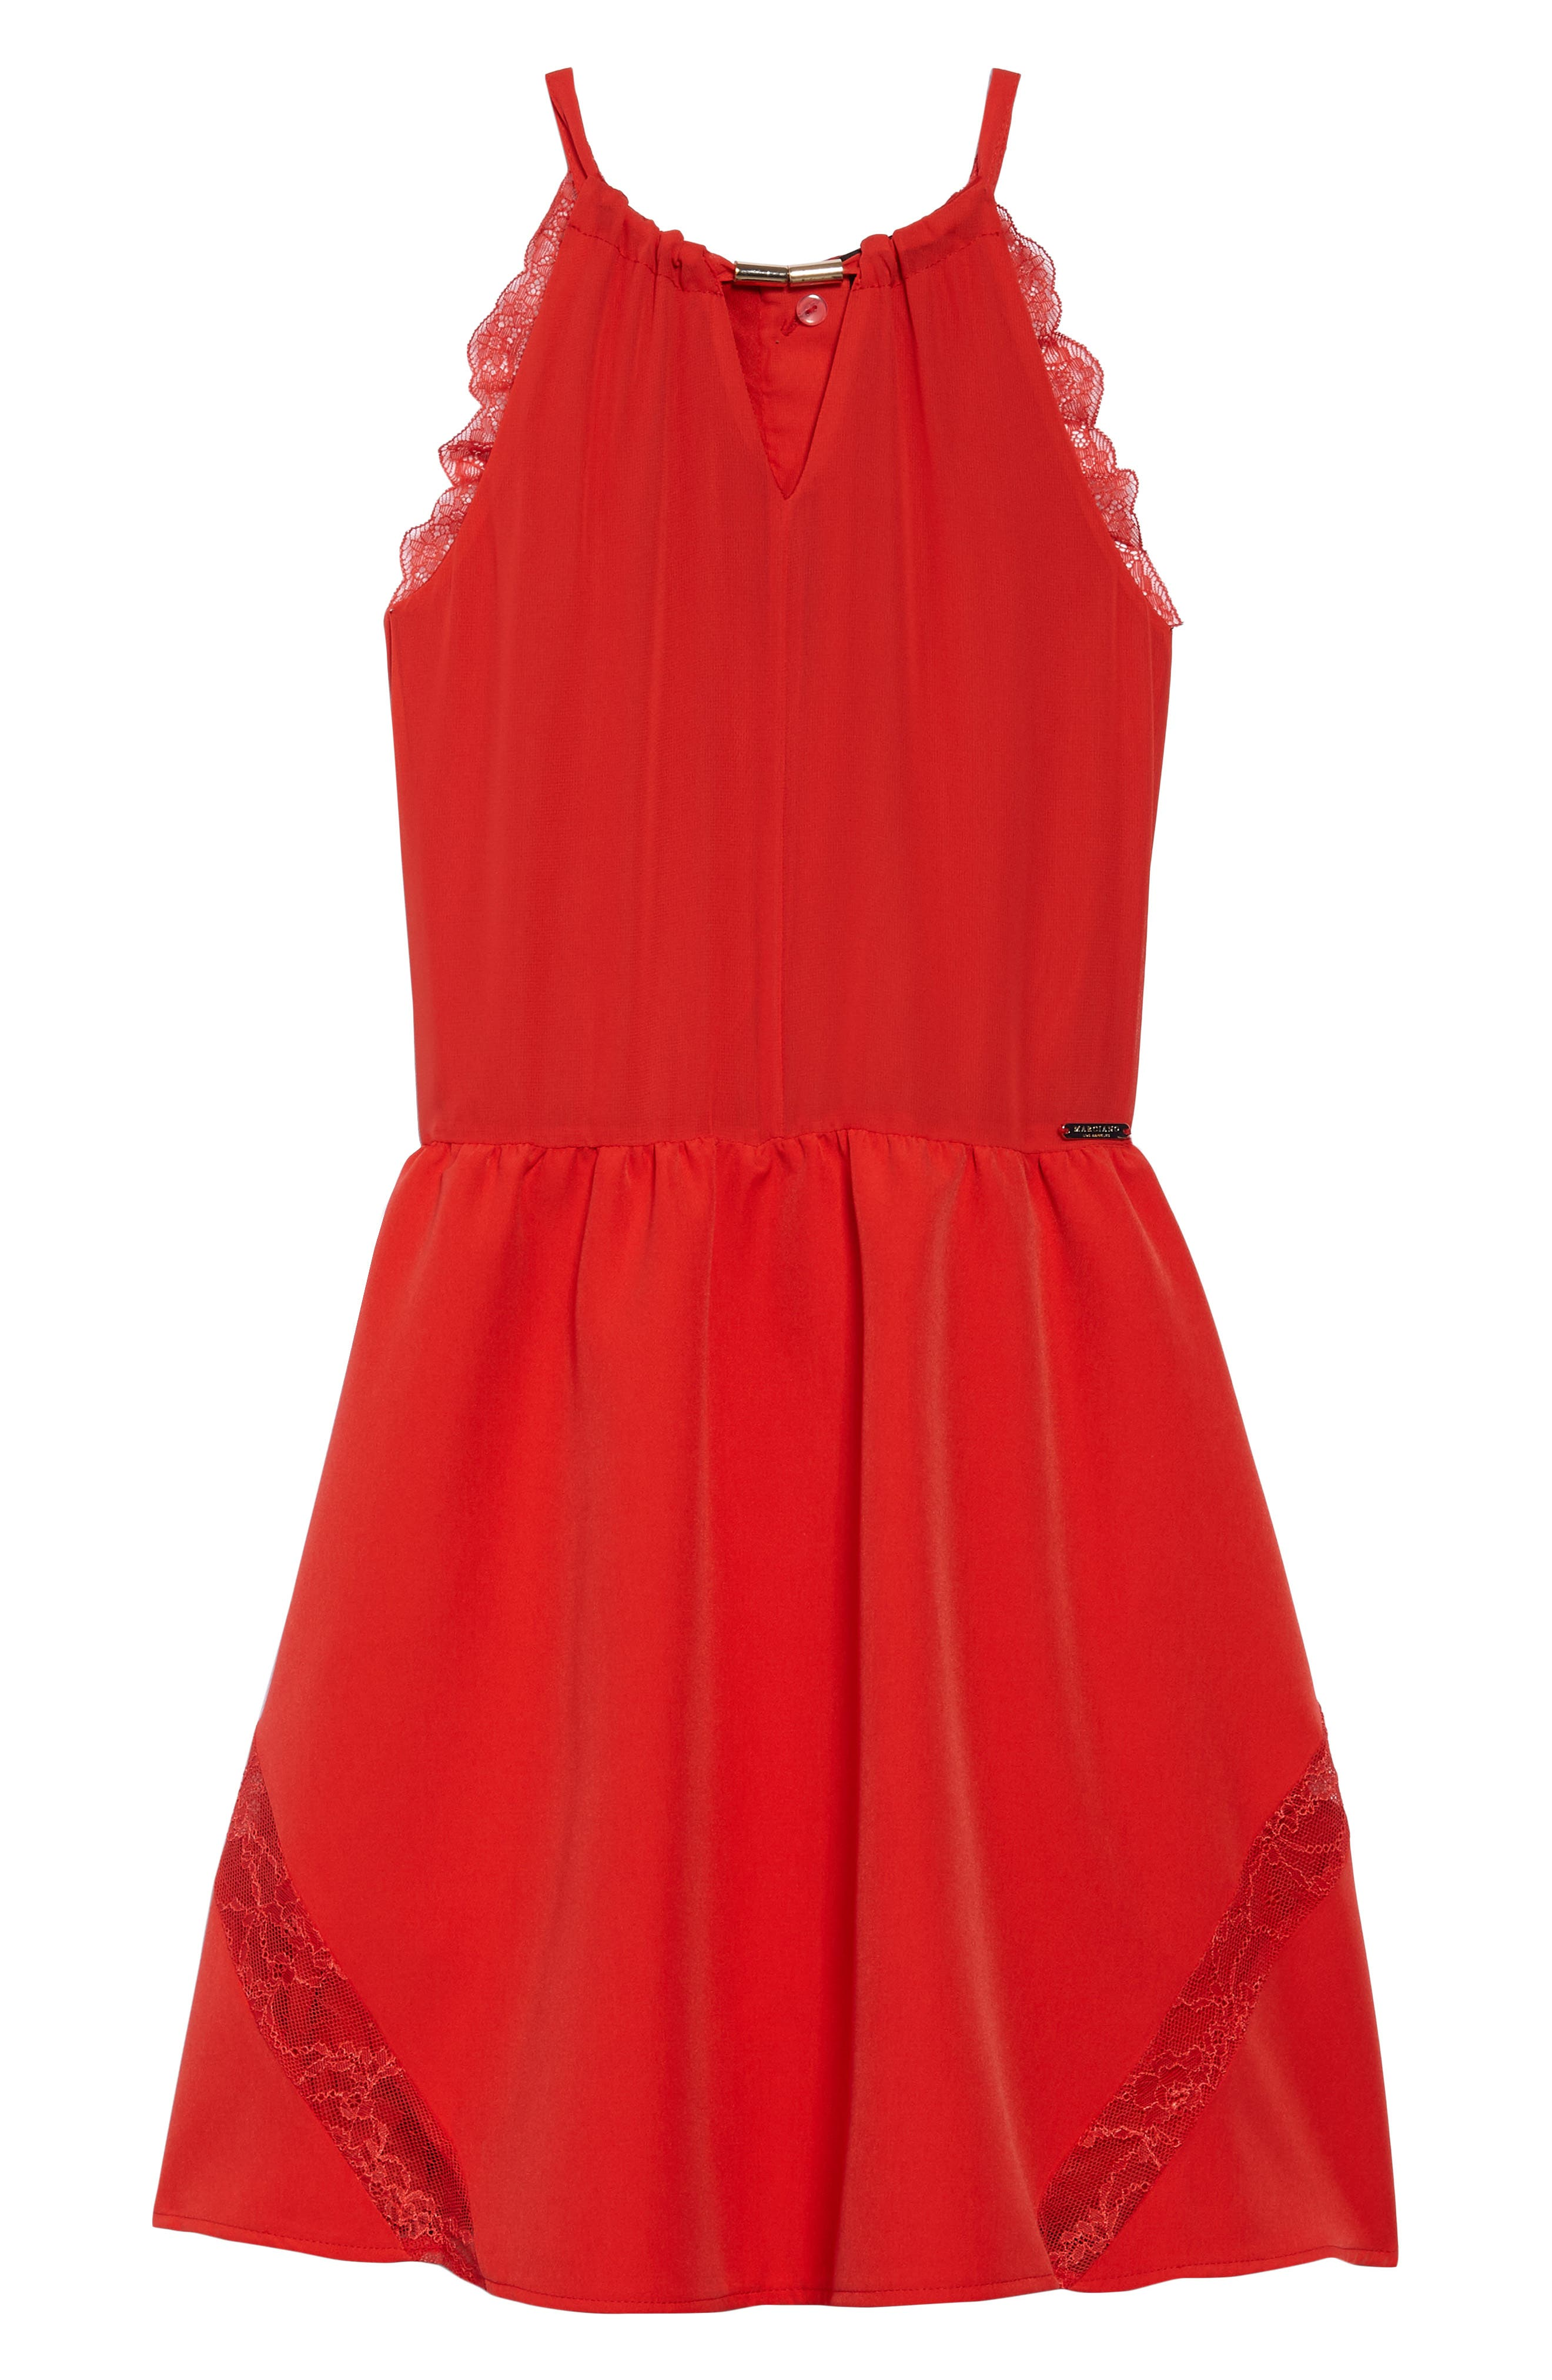 Main Image - Marciano Lace Trimmed Halter Dress (Big Girls)